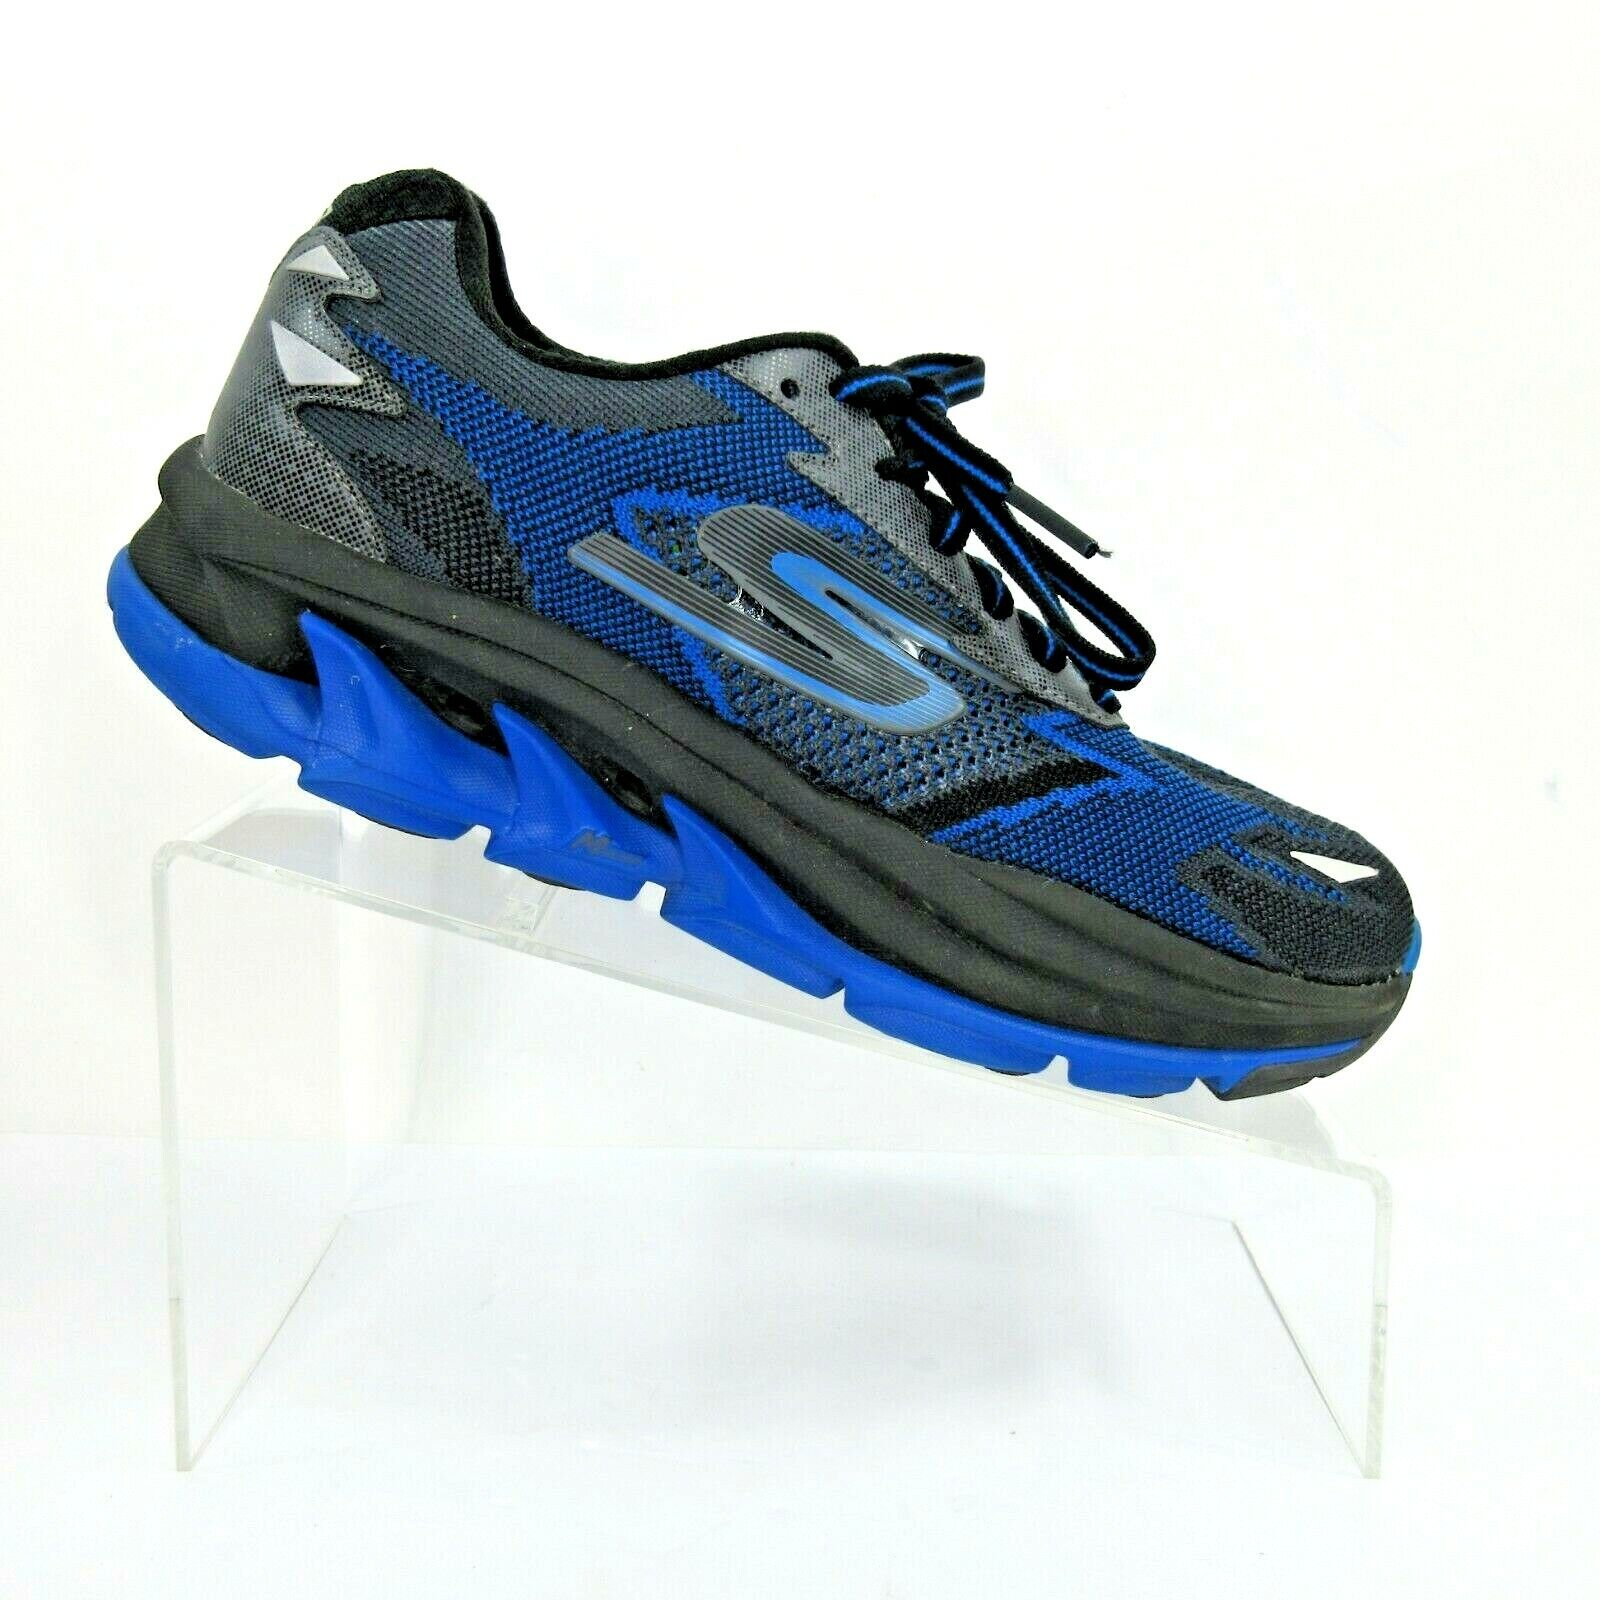 skechers go run ultra running shoes